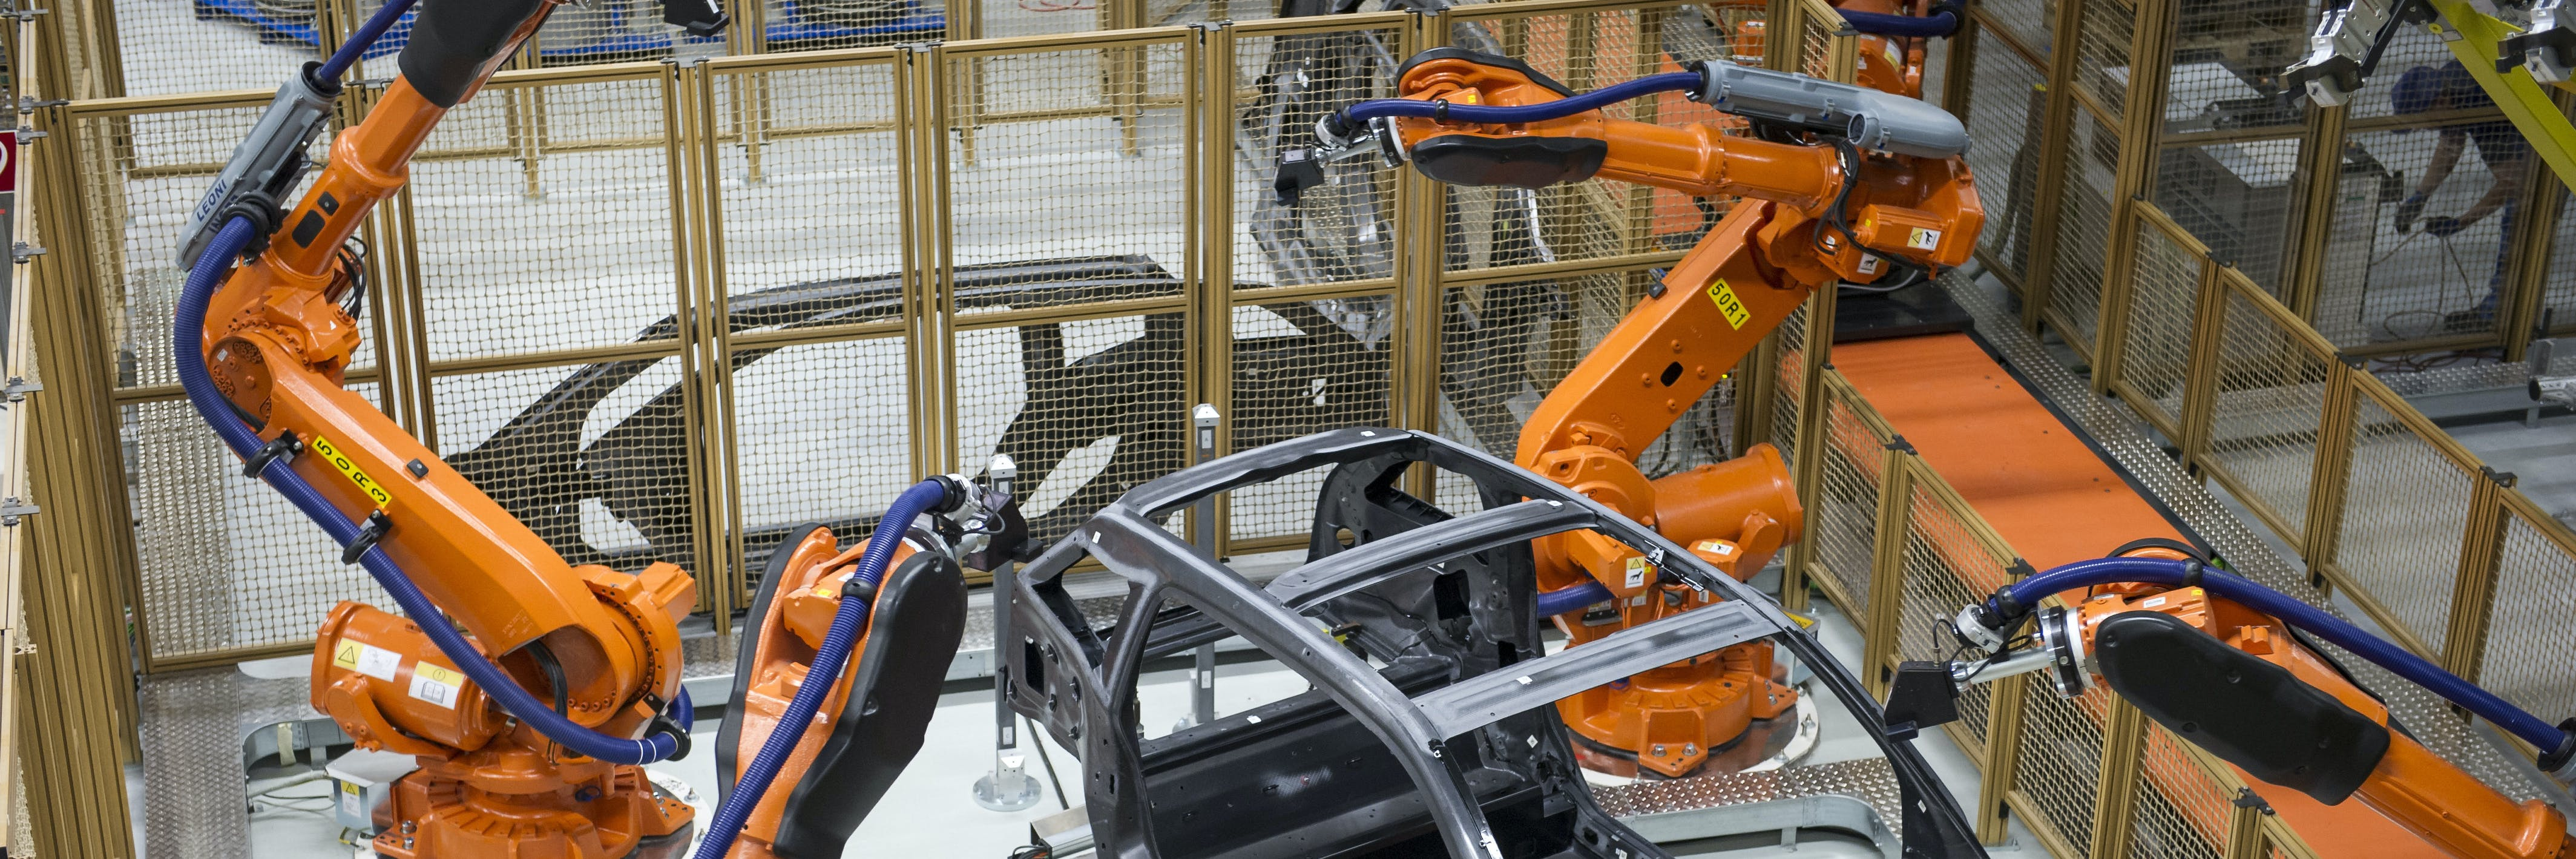 LEIPZIG, GERMANY - SEPTEMBER 18:  Robots manufacture a carbon chassis of a new BMW i3 electric car on the assembly line at the BMW factory on September 18, 2013 in Leipzig, Germany. The i3 is BMW's first mass market electric car and the company has invested EUR 400 million into its production at the Leipzig factory. (Photo by Jens Schlueter/Getty Images)